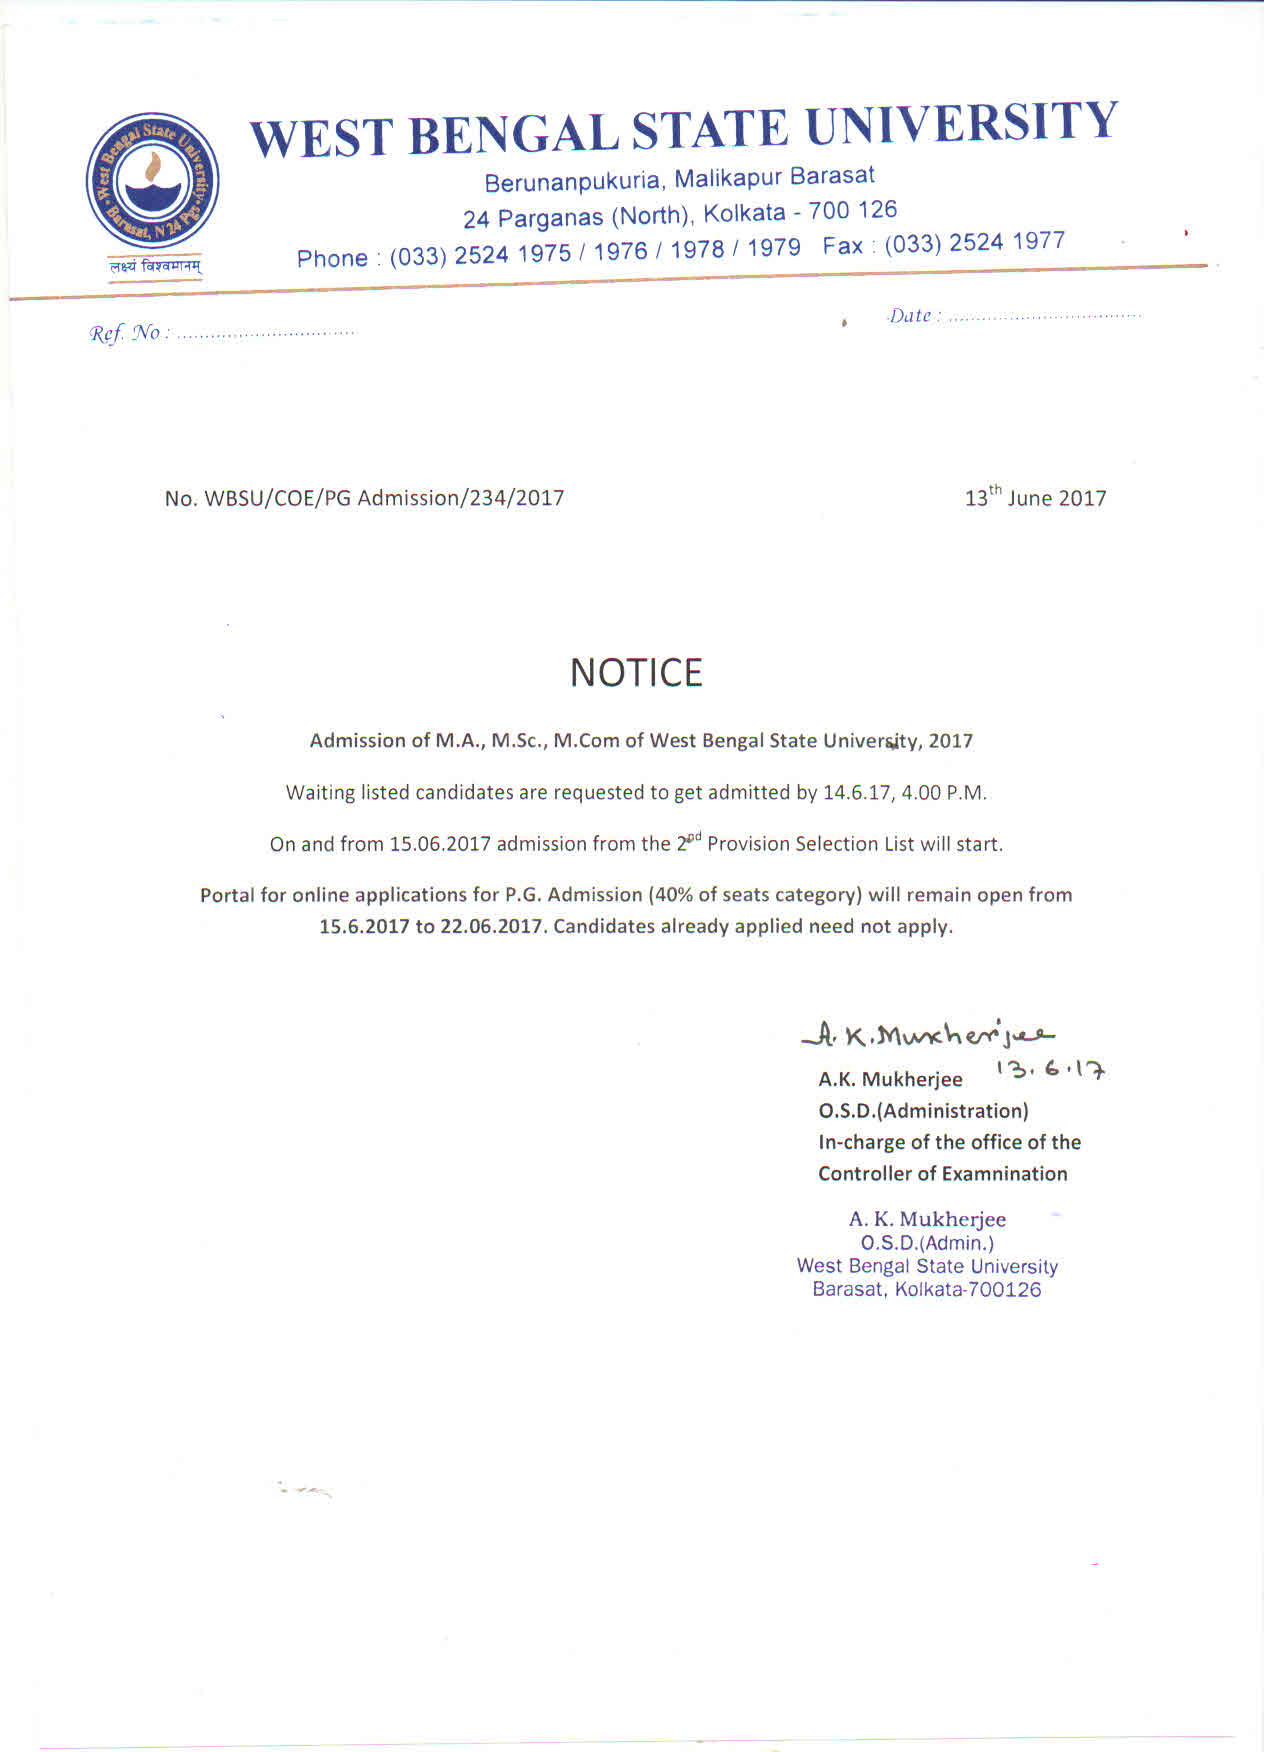 Wbsu of commerce management notice for pg admission 2017 18 yadclub Gallery